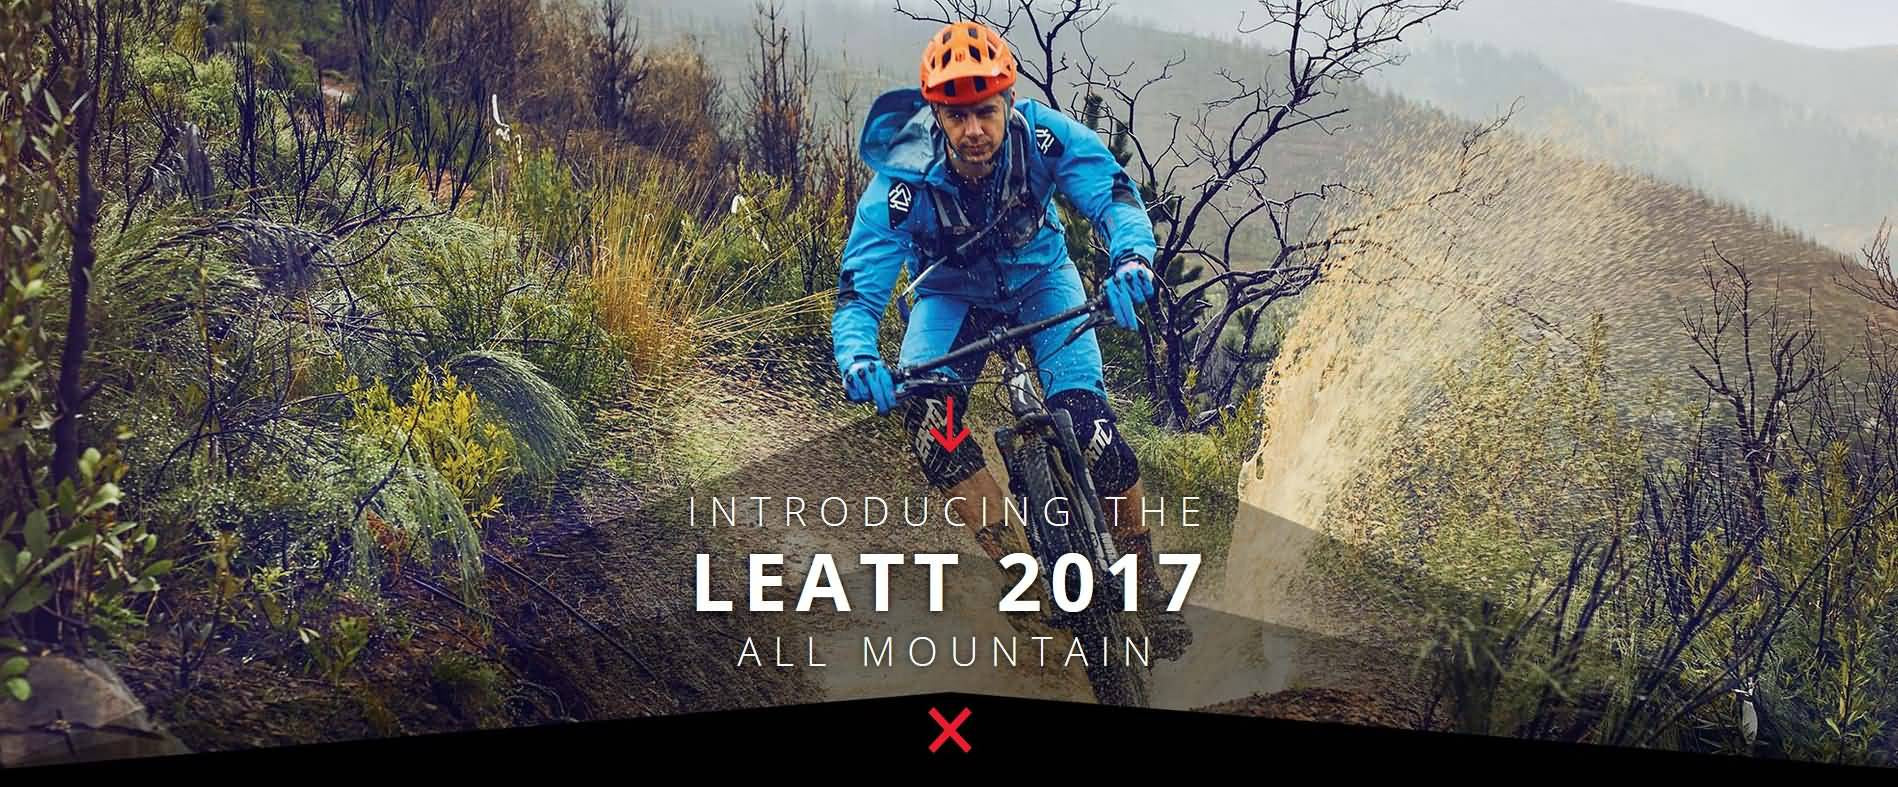 Introducing The Leatt 2017 All Mountain Bicycle Helmets